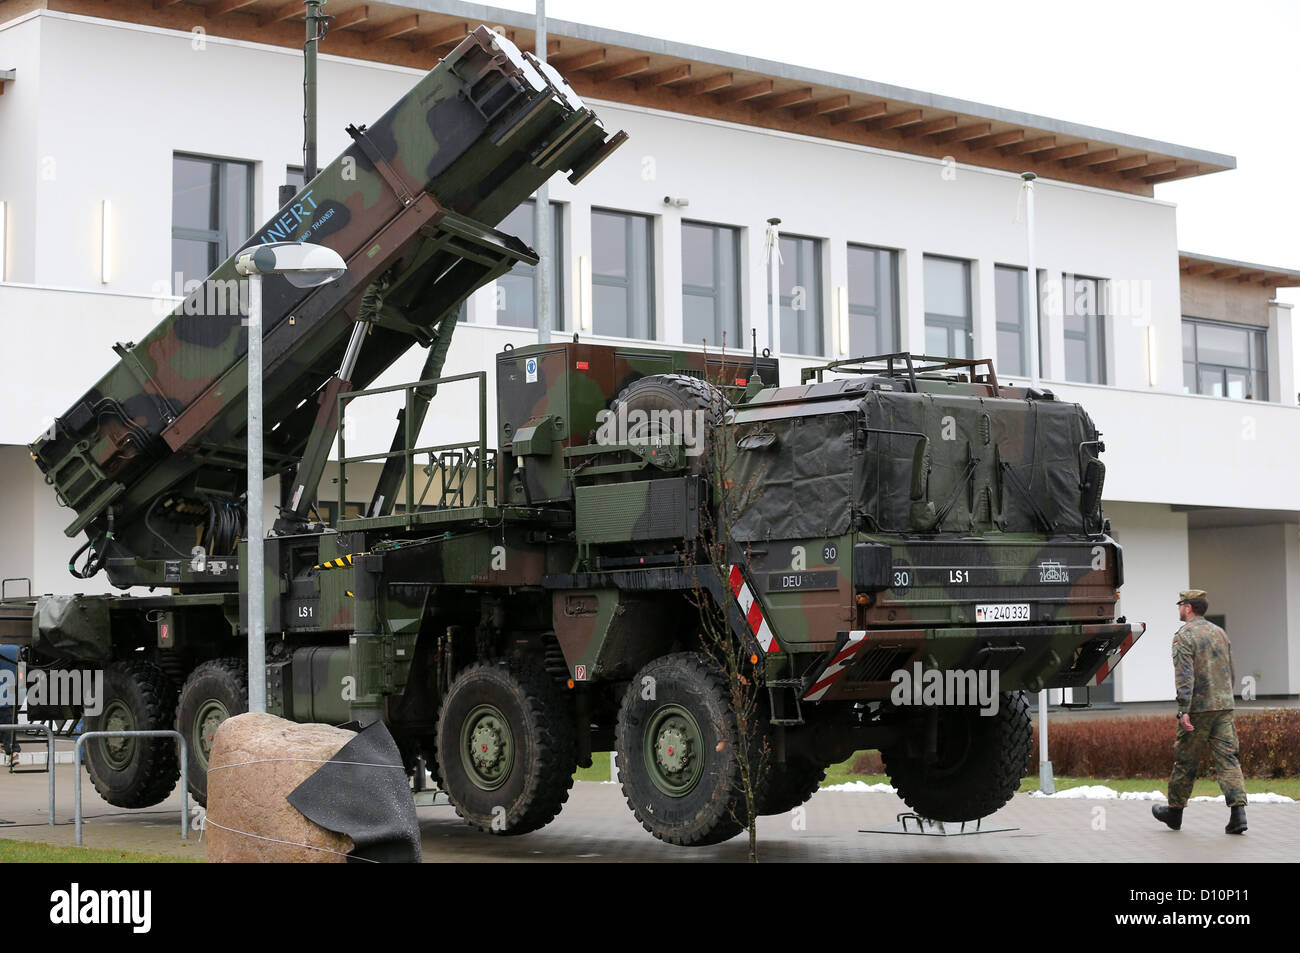 A PAC 3 patriot missile system firing device also intended